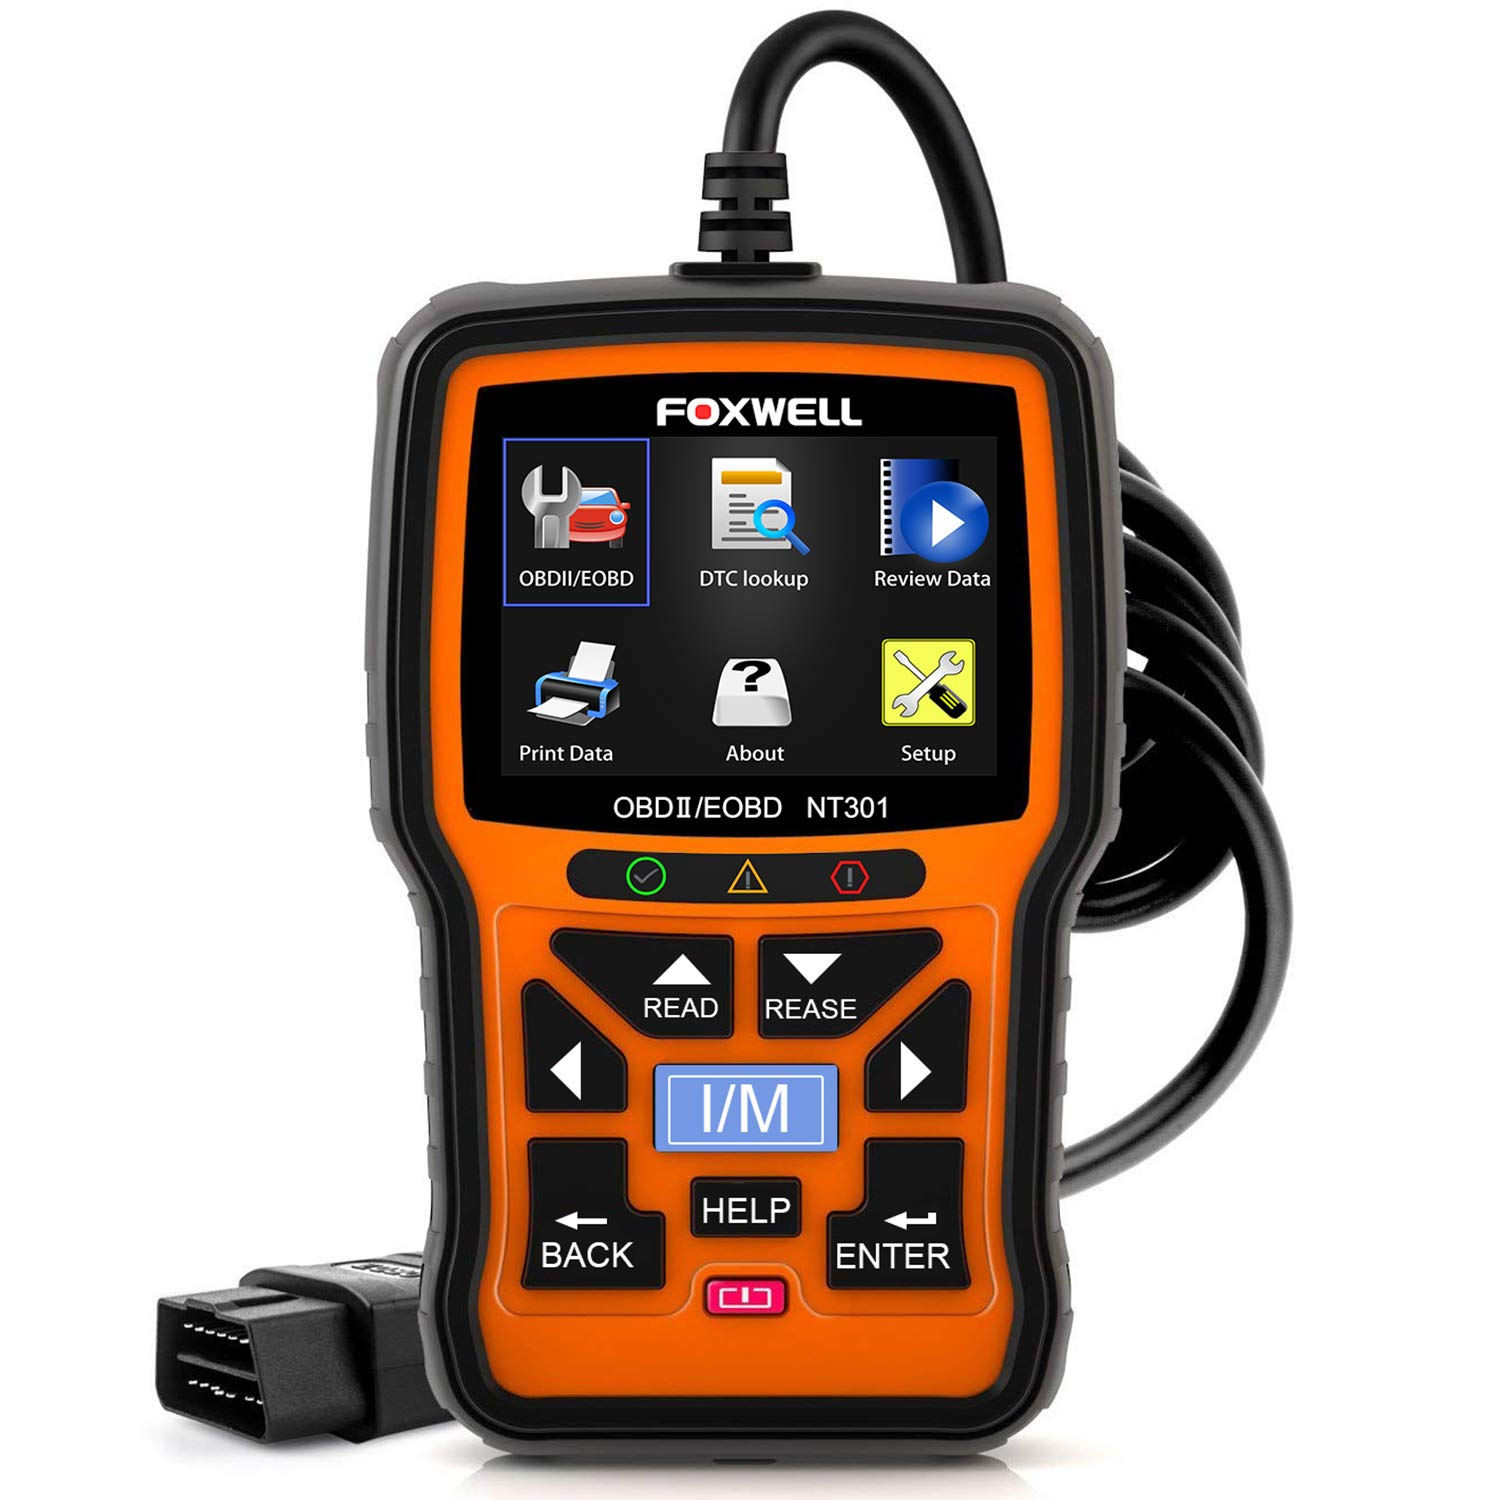 Foxwell NT301 OBD-II Diagnostic Code Reader